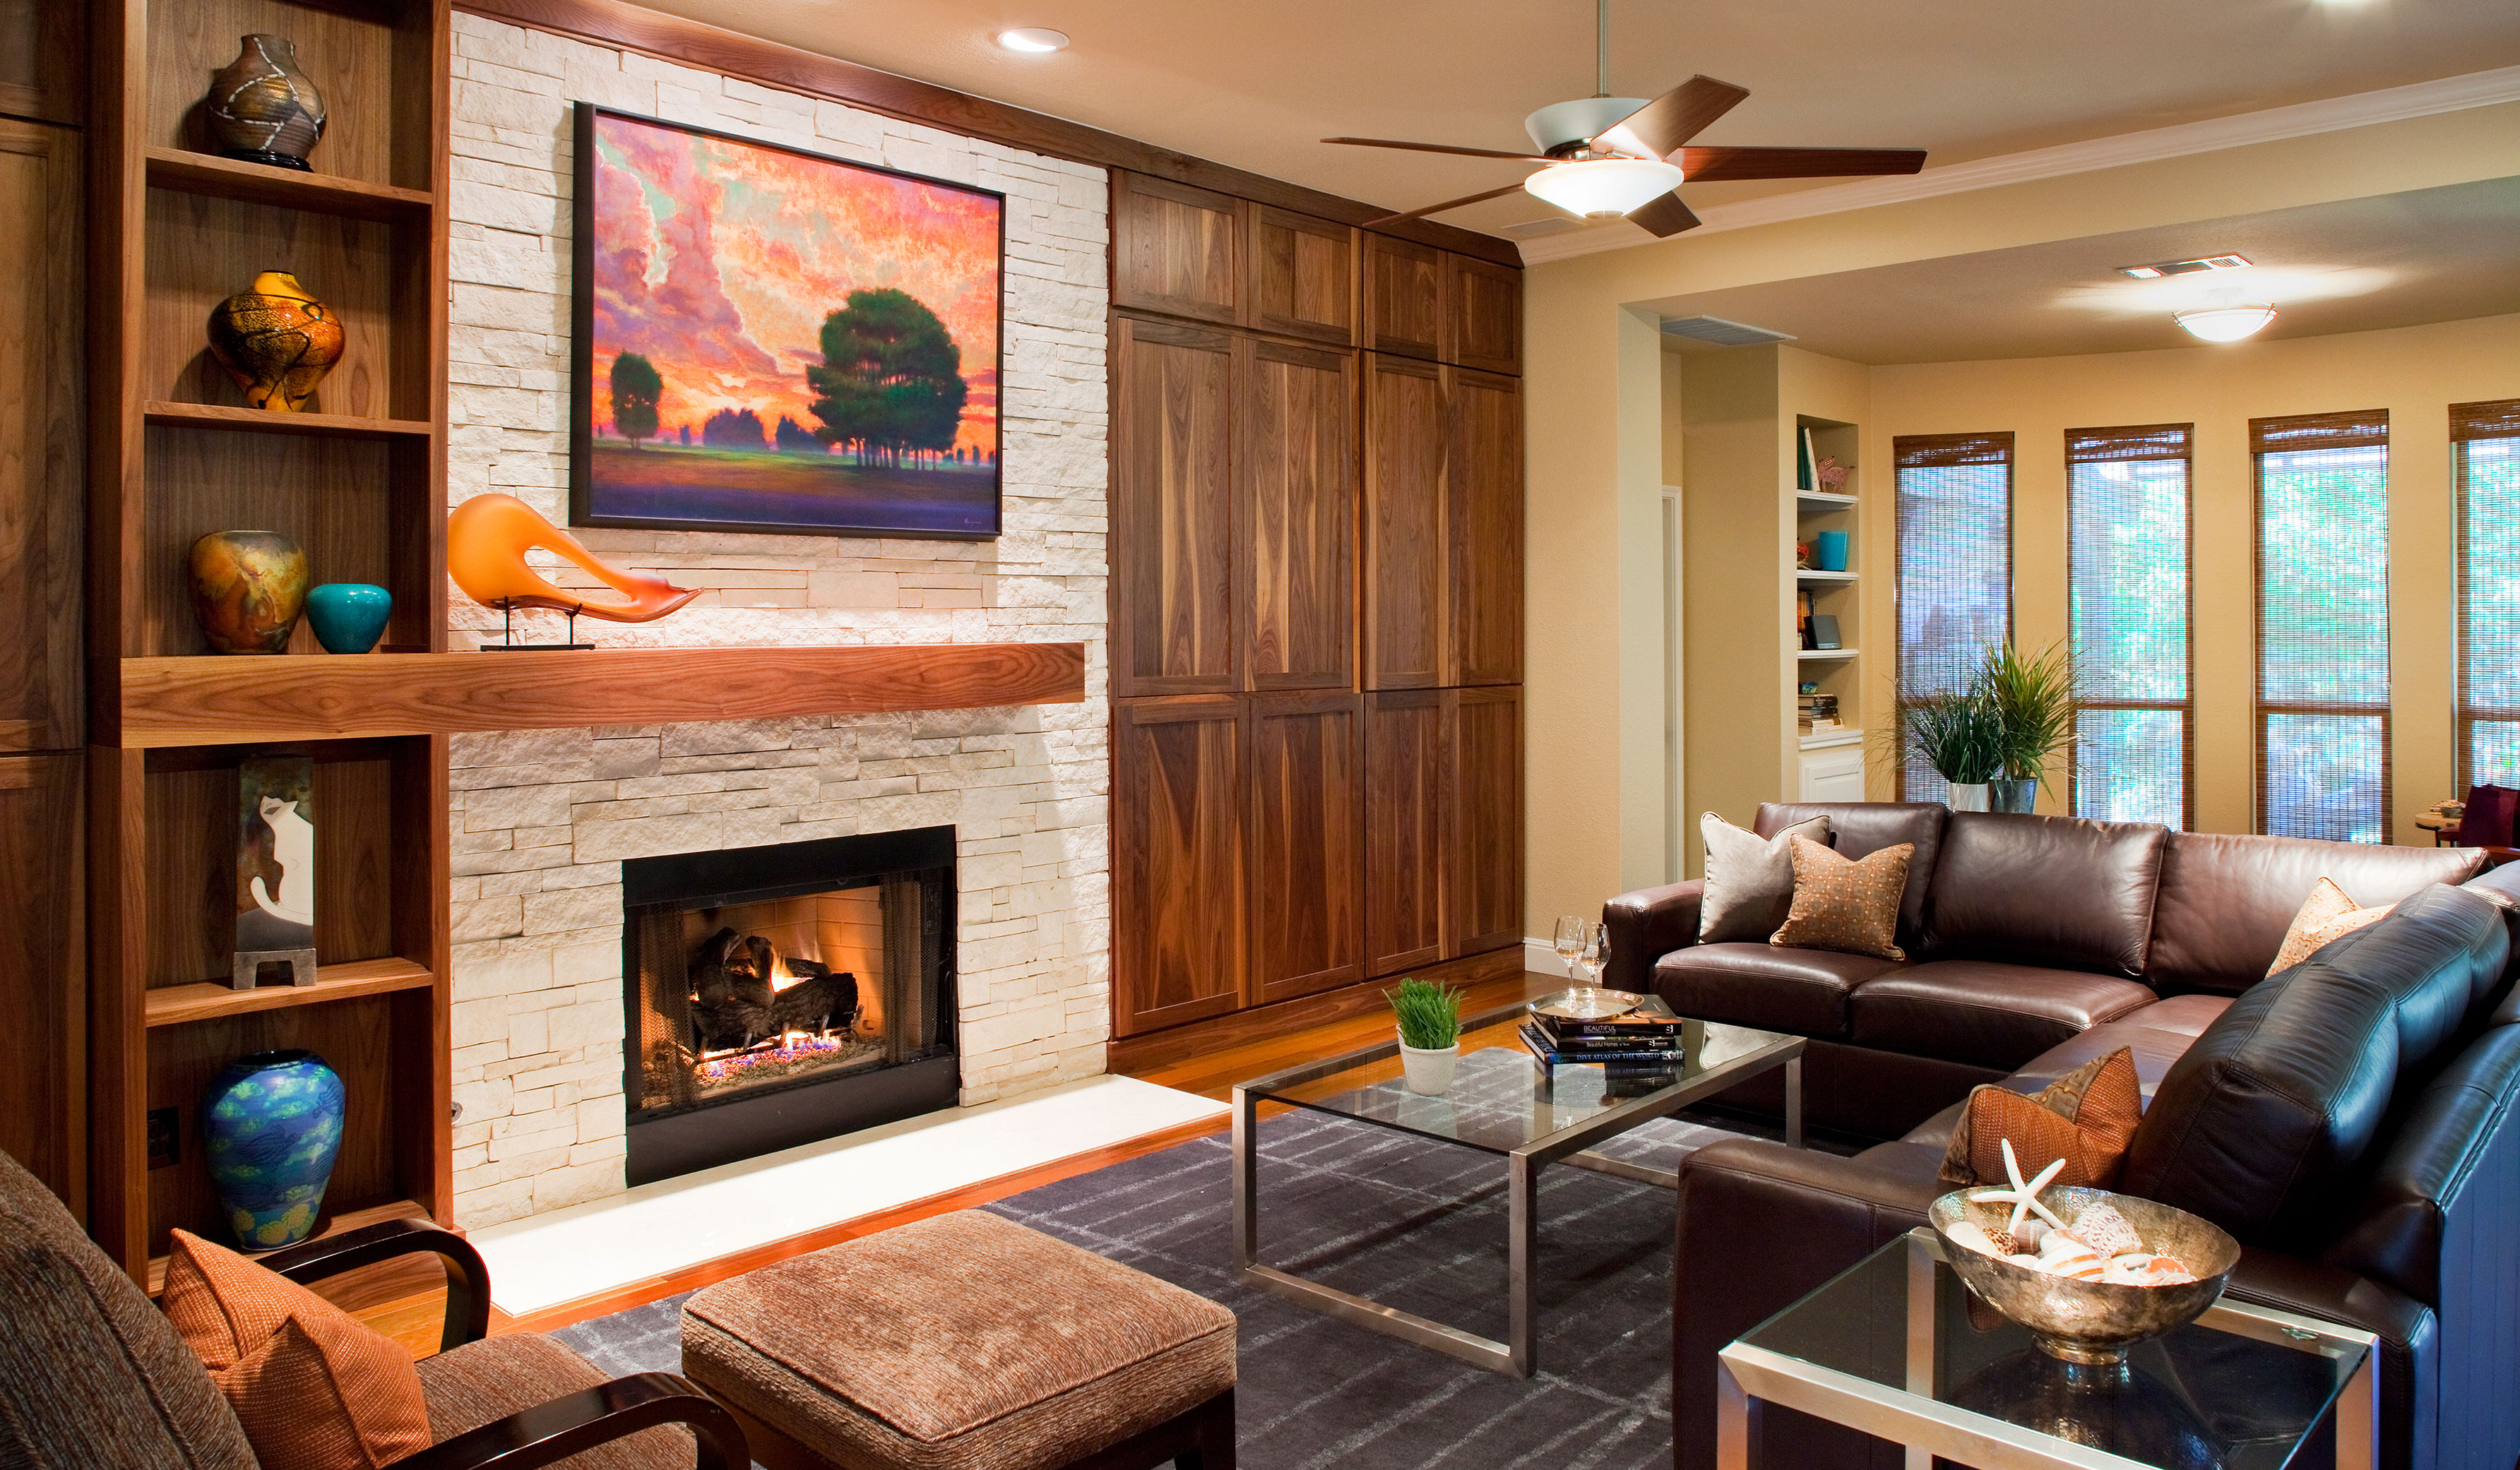 Southwestern Interior Design Style And Decorating Ideas 5 Southwestern